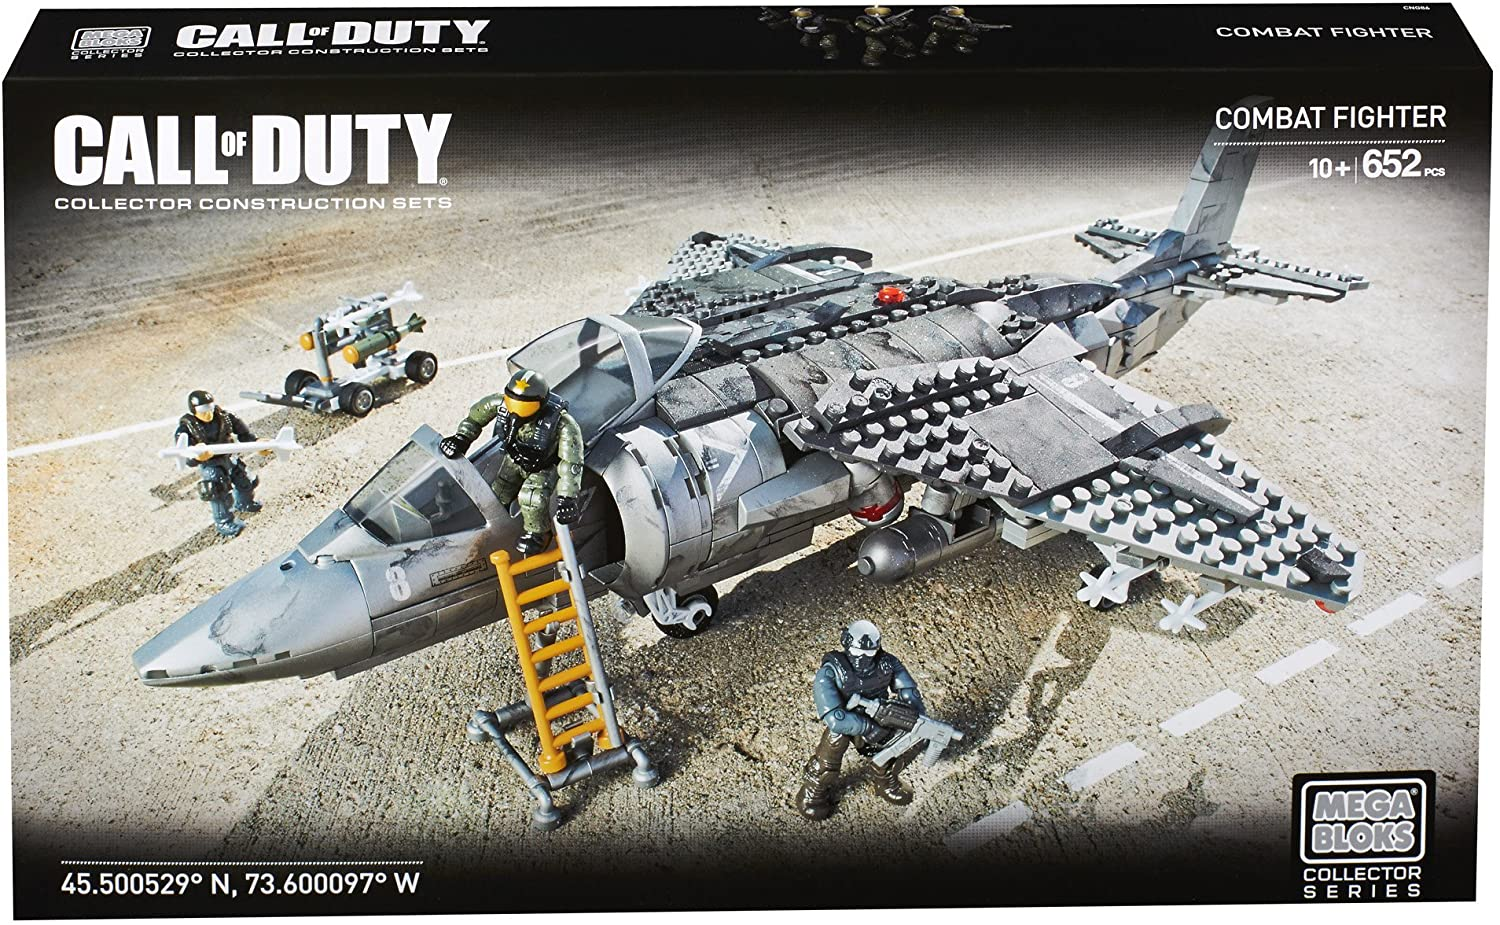 FIGHTER JET Building Set 652 piece CNG86 Mega Bloks Call of Duty COMBAT Strike